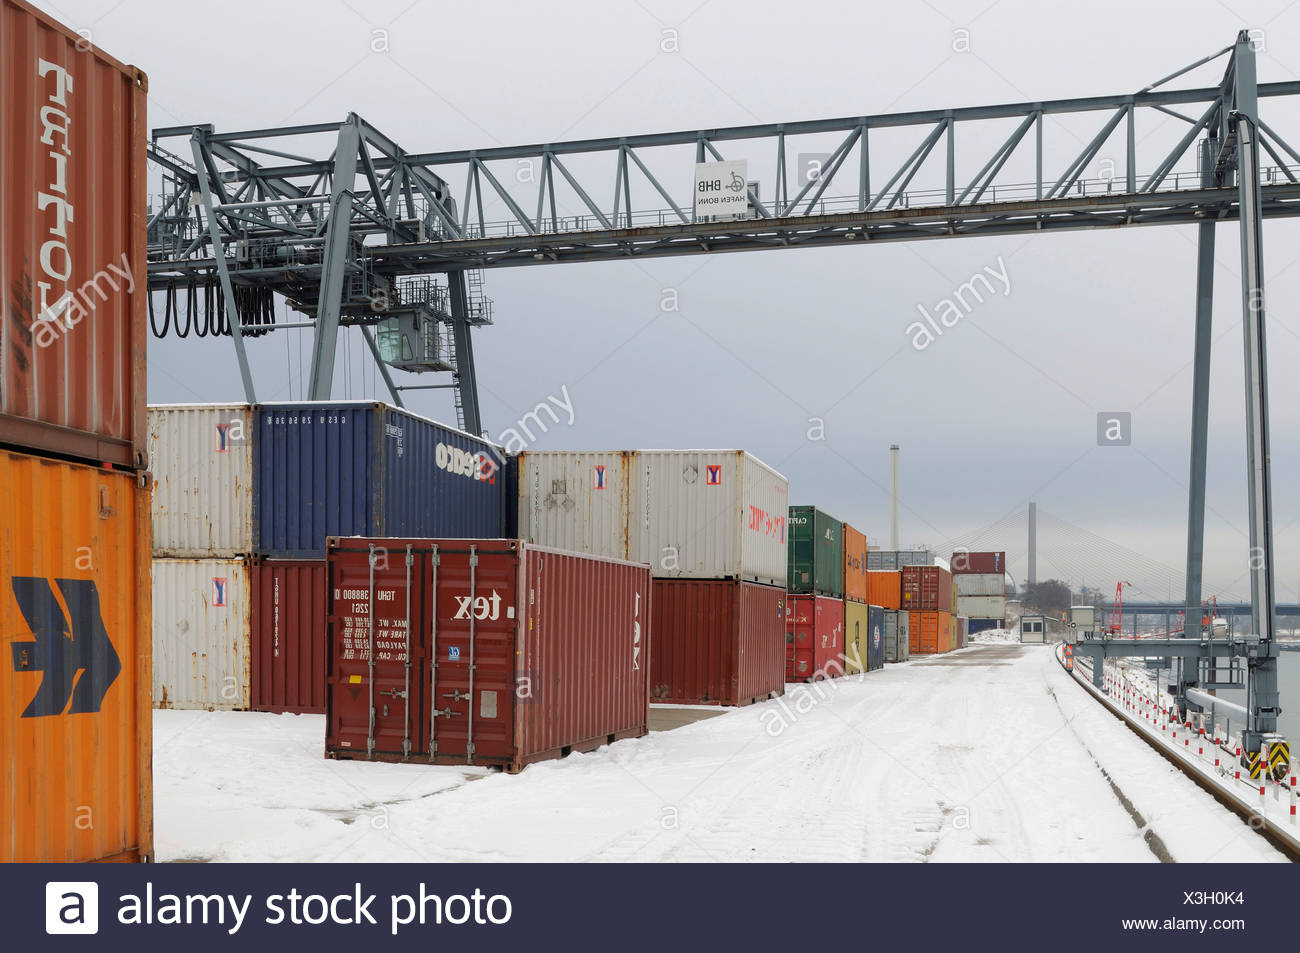 Winter at Bonn Harbour, snow-covered quay, view of container terminal and portainer, North Rhine-Westphalia, Germany, Europe - Stock Image